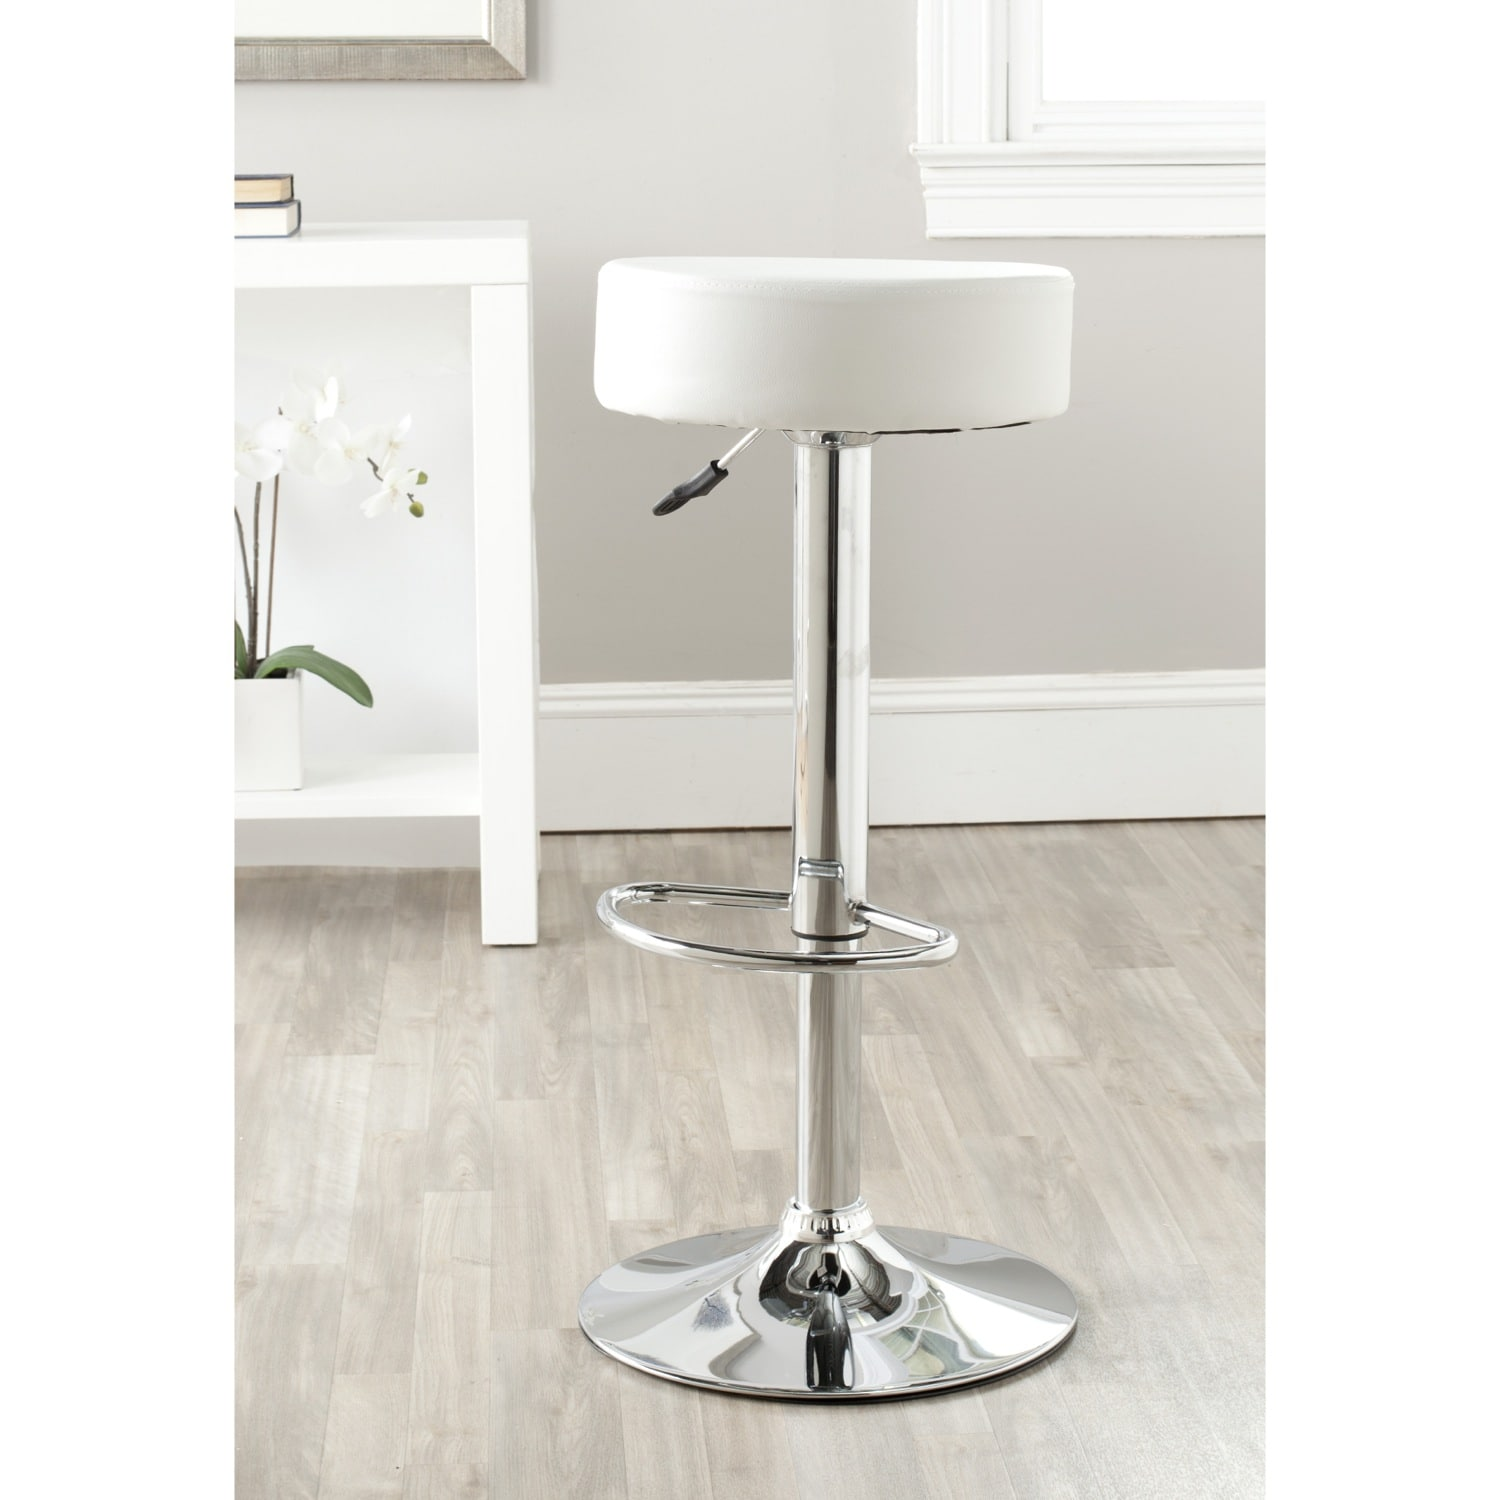 Safavieh Jute White Adjustable Height Swivel Bar Stool